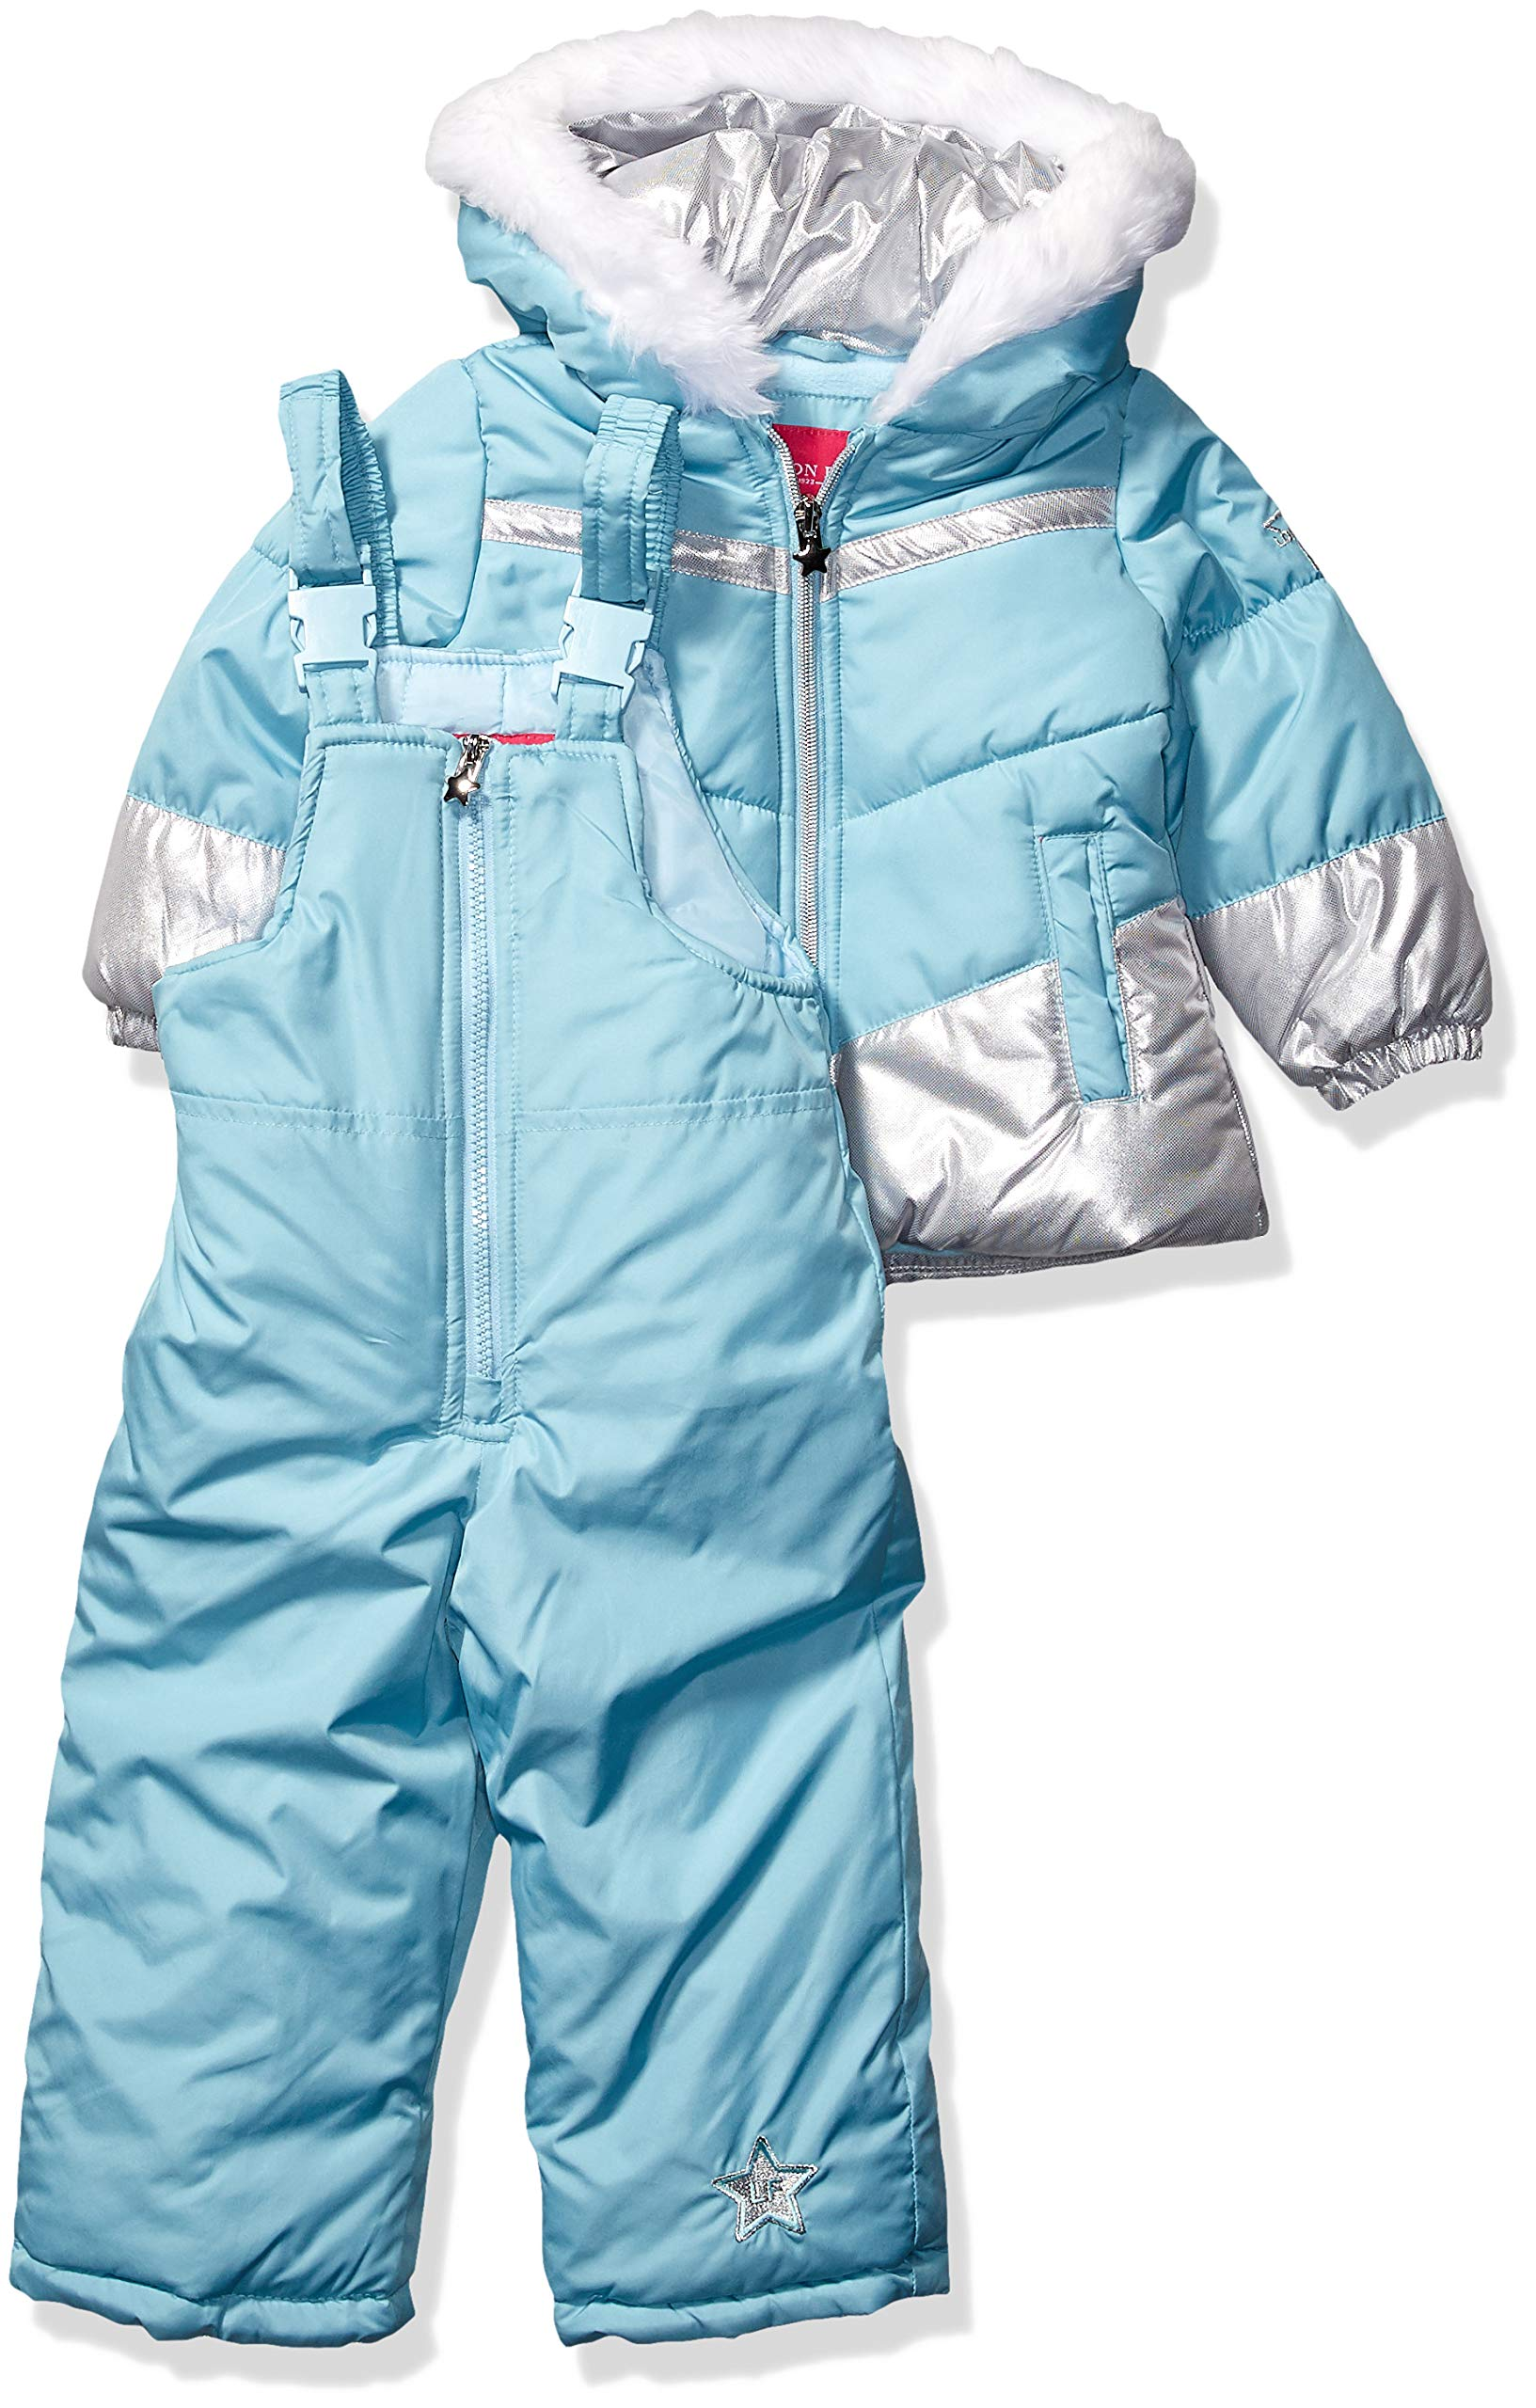 London Fog Girls' Toddler Snowsuit with Snowbib and Puffer Jacket, September Sky Foil, 2T